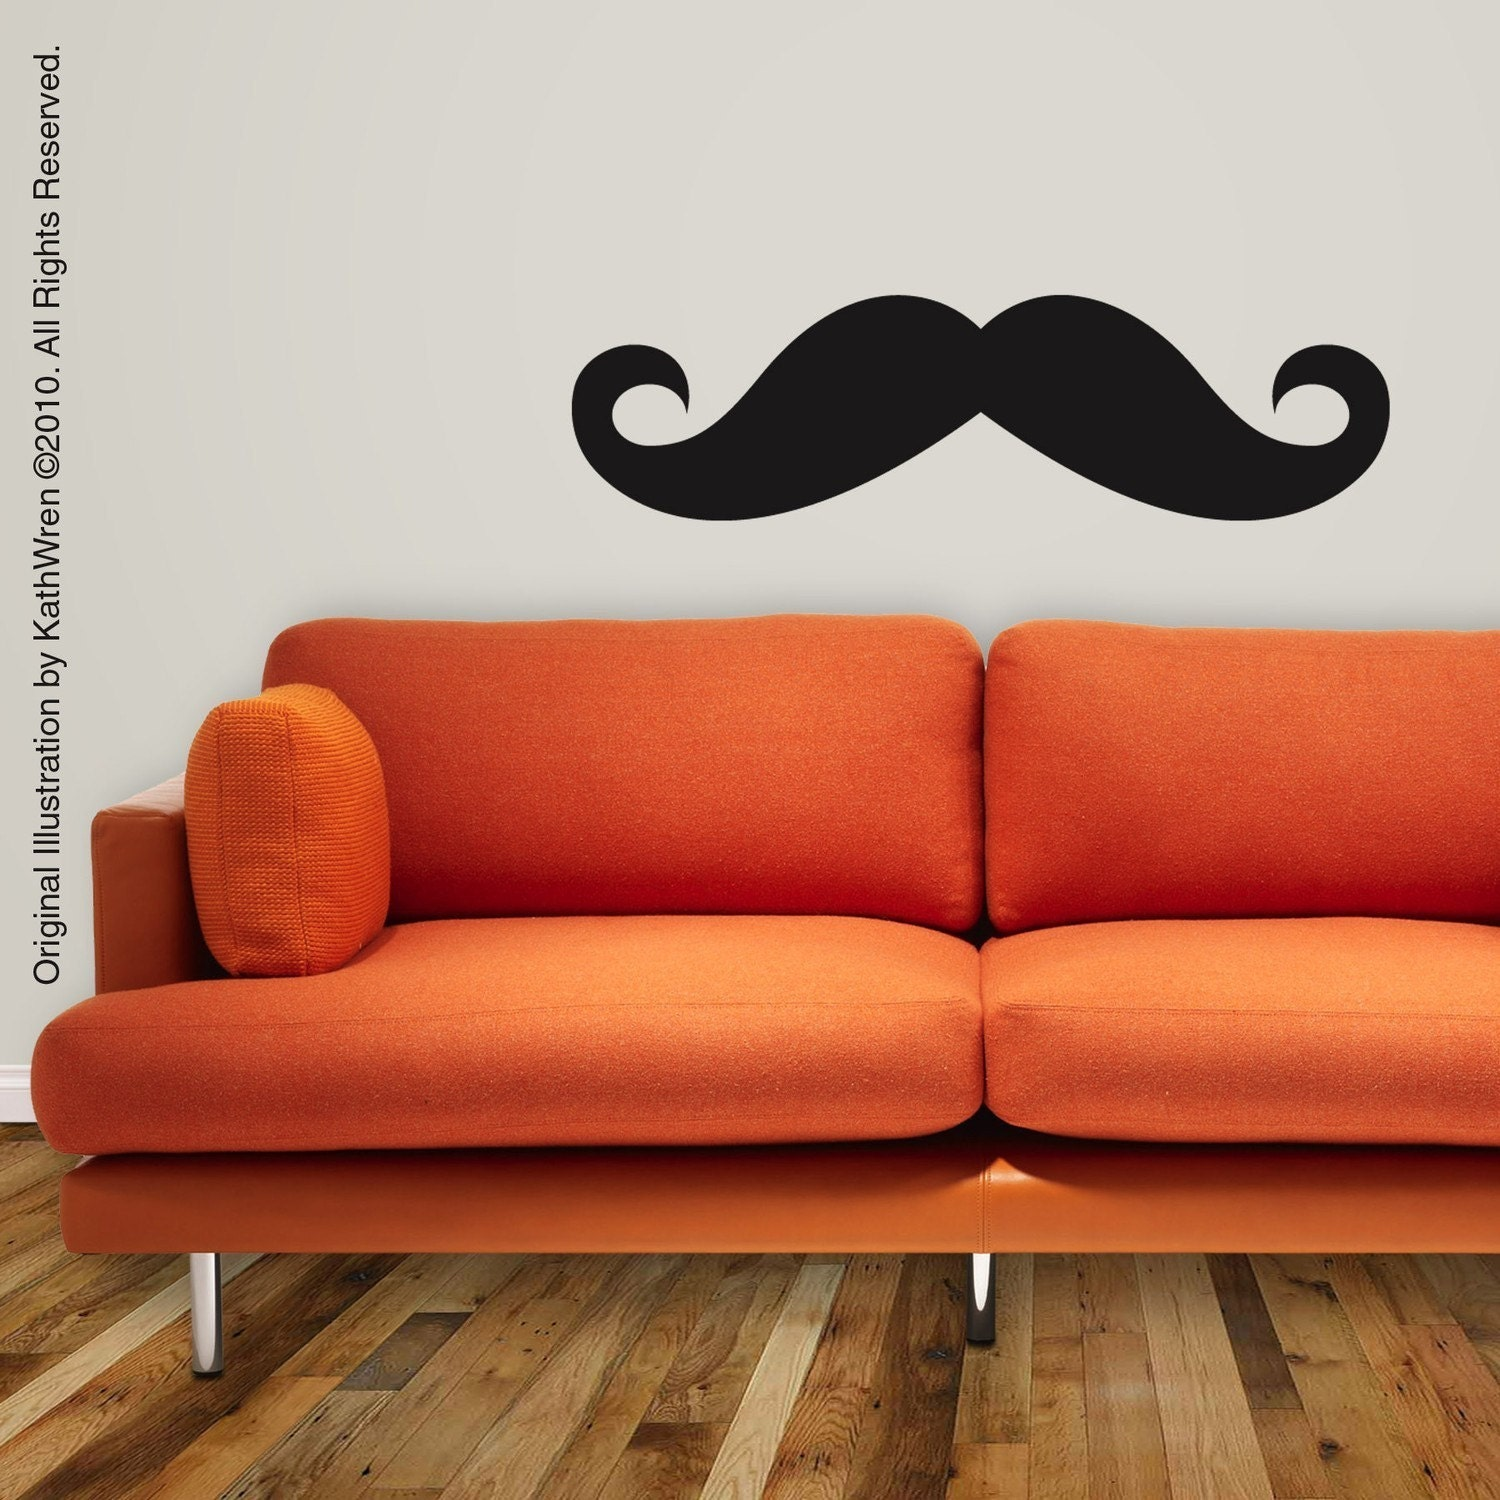 moustache vinyl wall decal free ship by kathwren on etsy walltat launches fall 2012 collection of wall decals